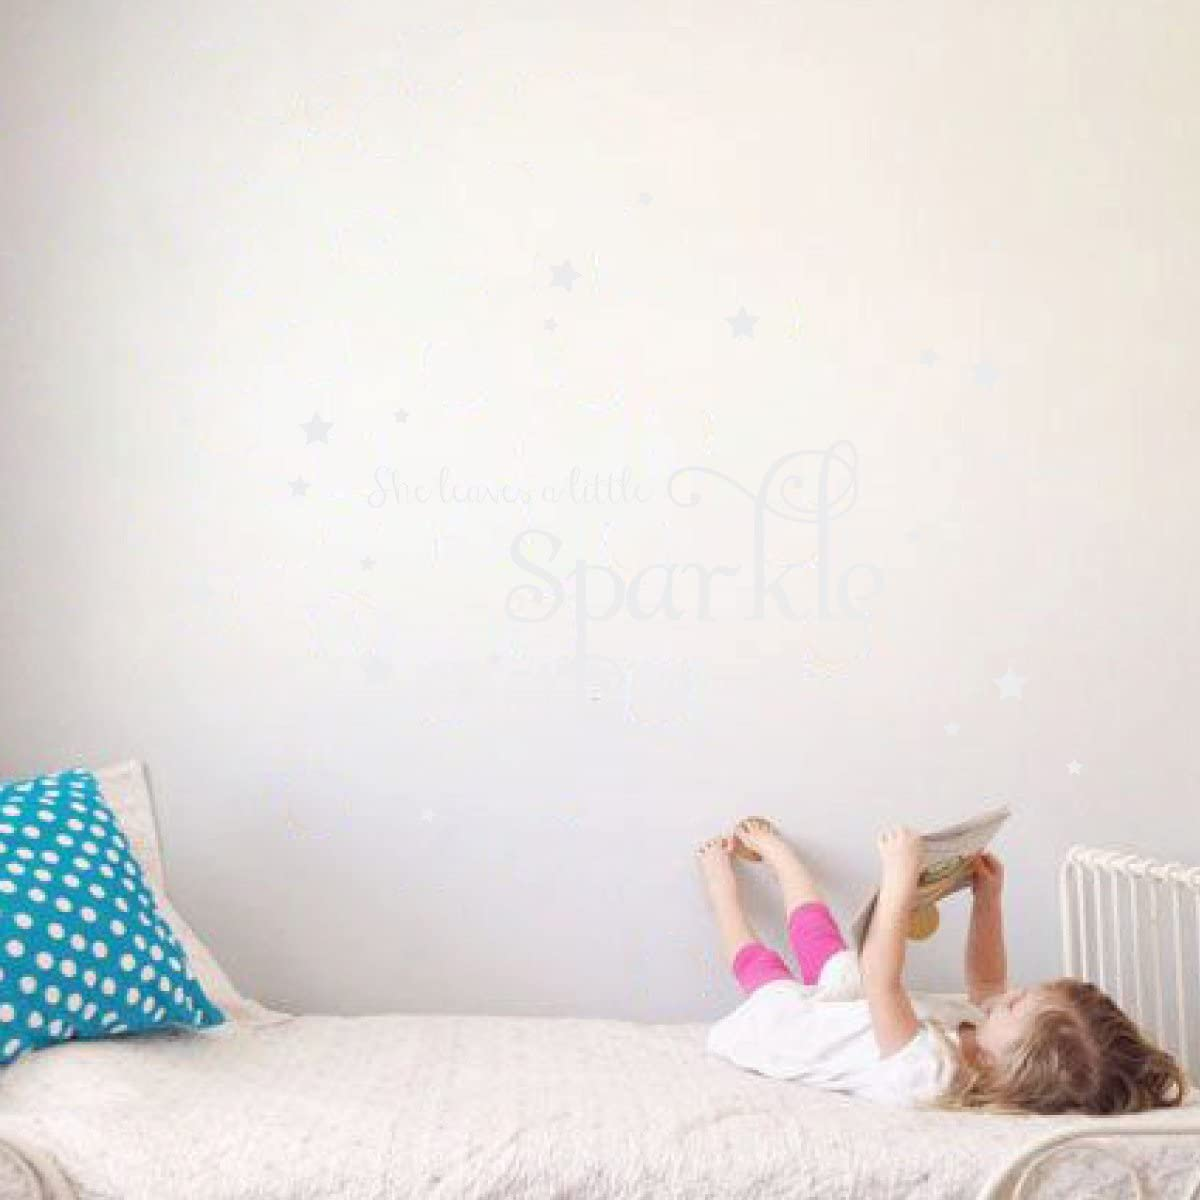 She Leaves a Little Sparkle Girls Room Vinyl Wall Decal Sticker Inspirational Quote with Stars (White, 15x36 inches)